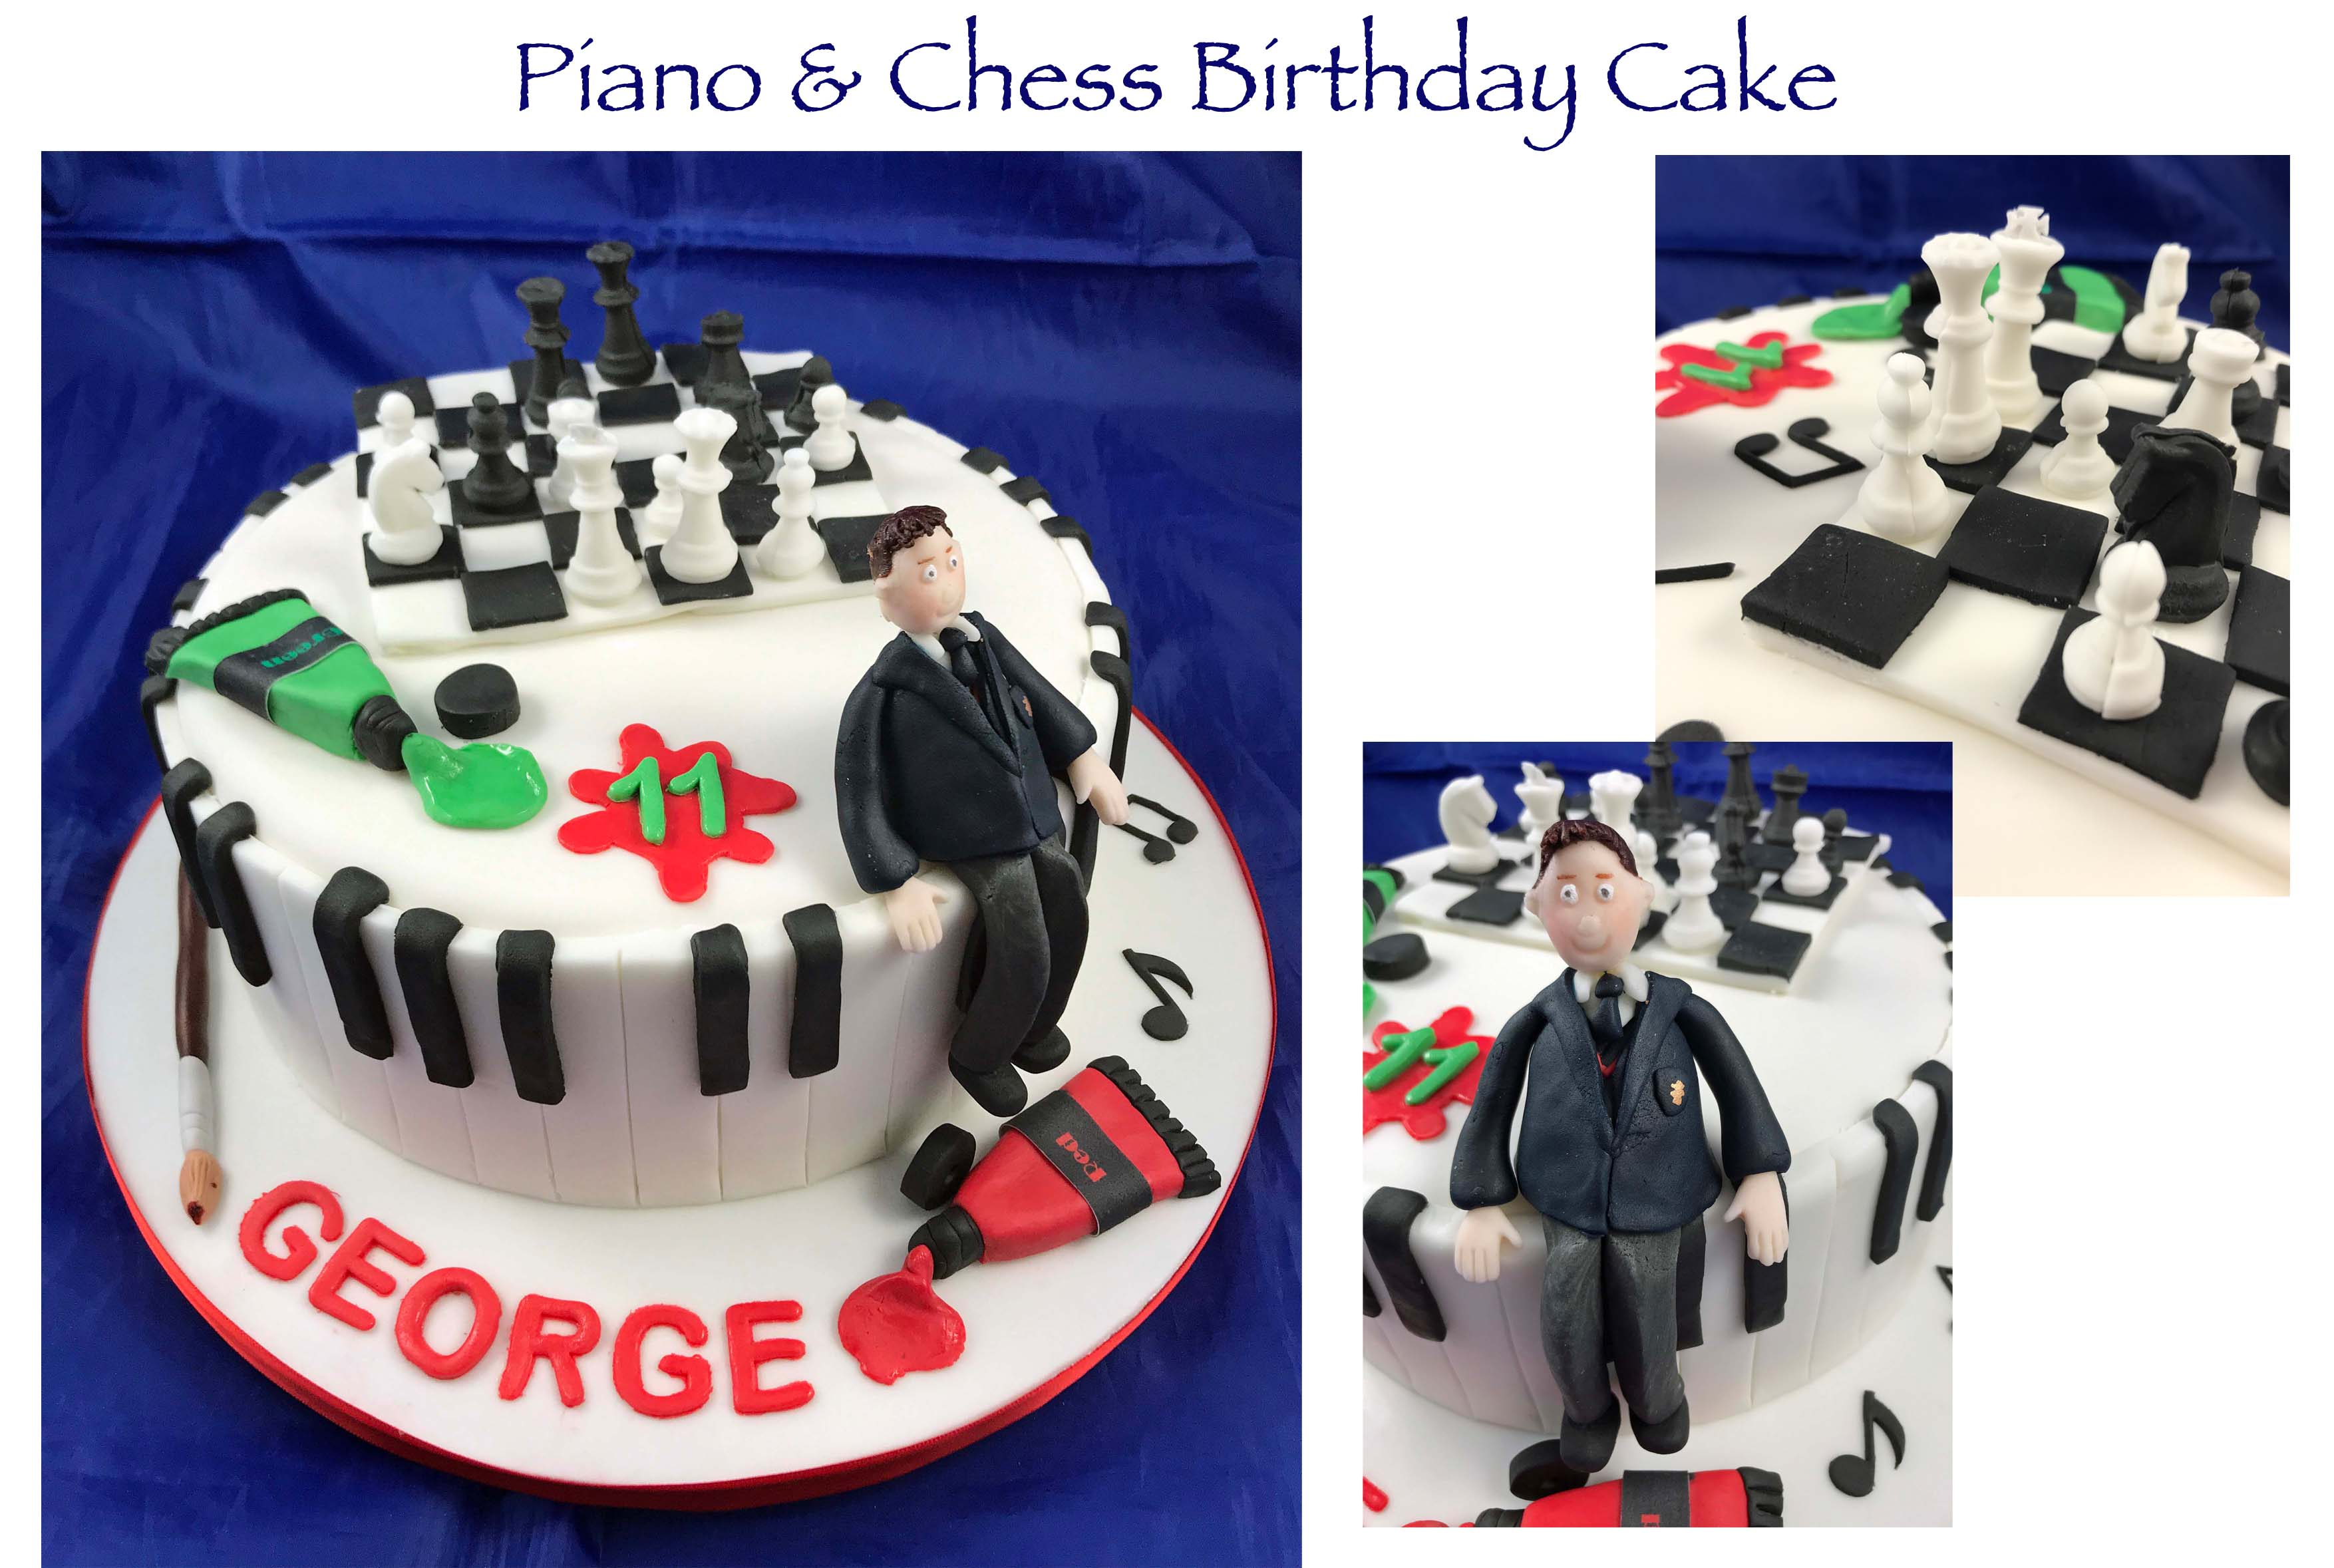 Piano and Chess Birthday Cake